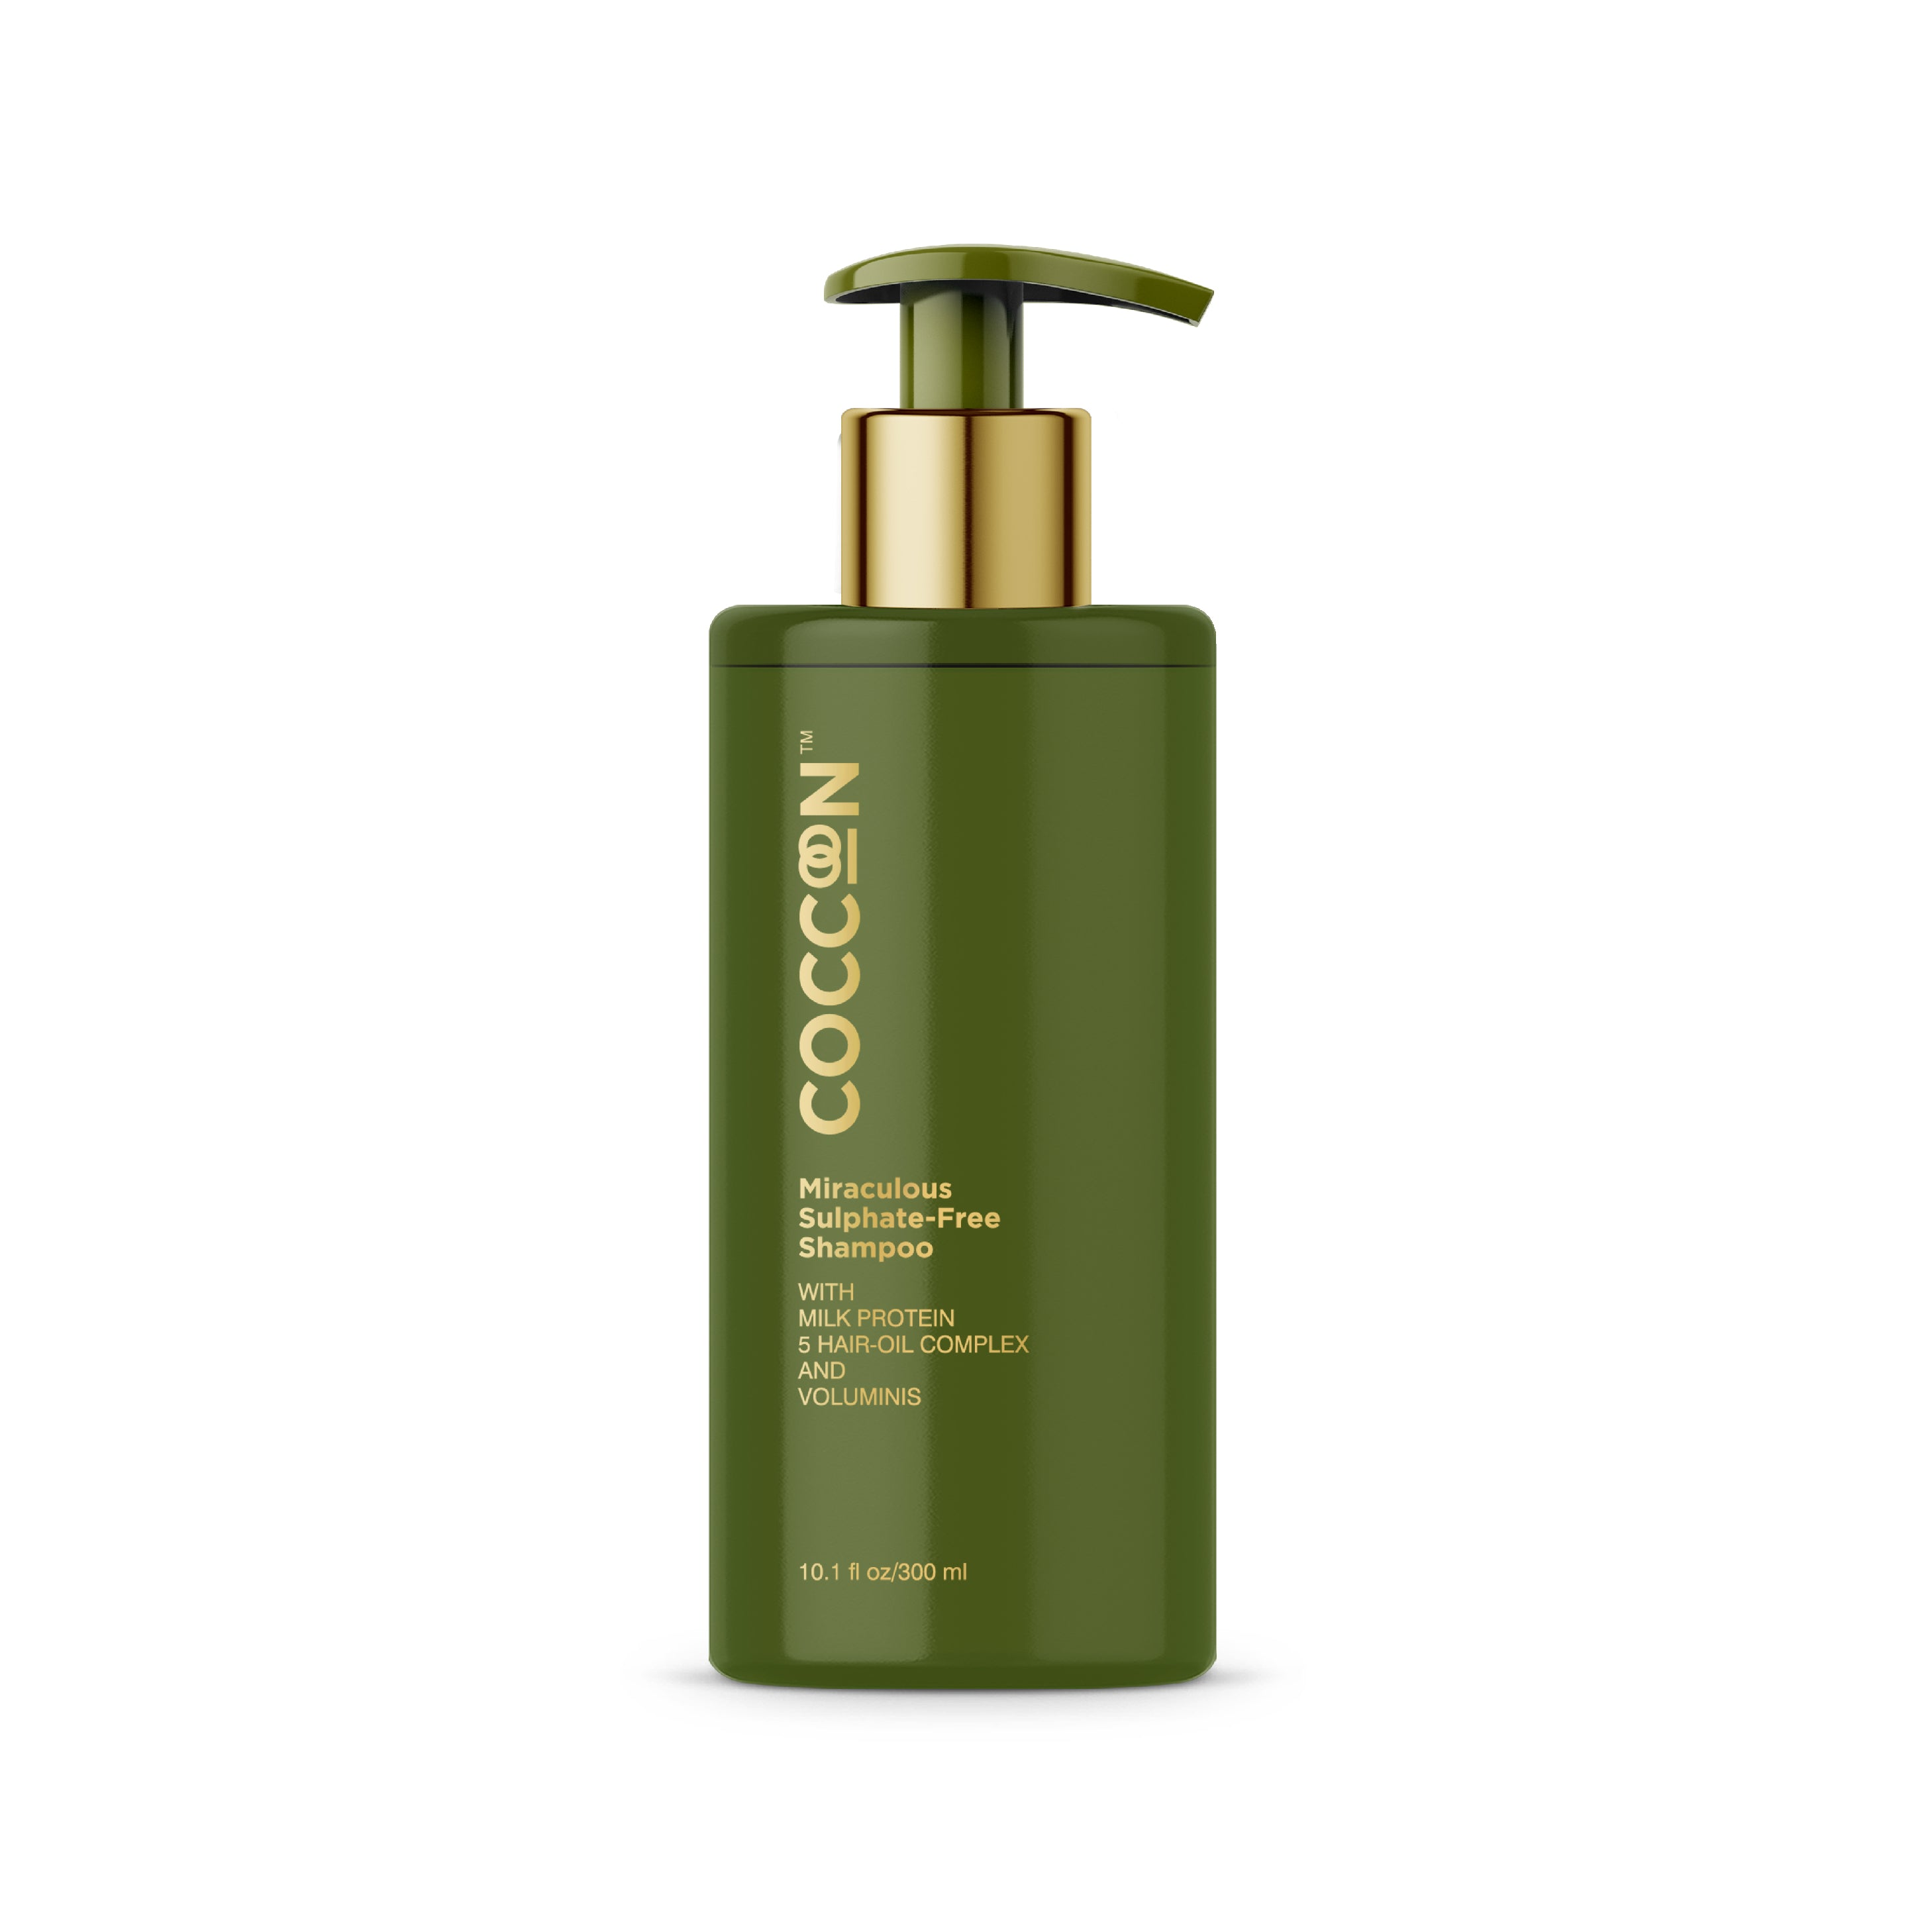 Coccoon Miraculous Sulphate Free Shampoo 300ml